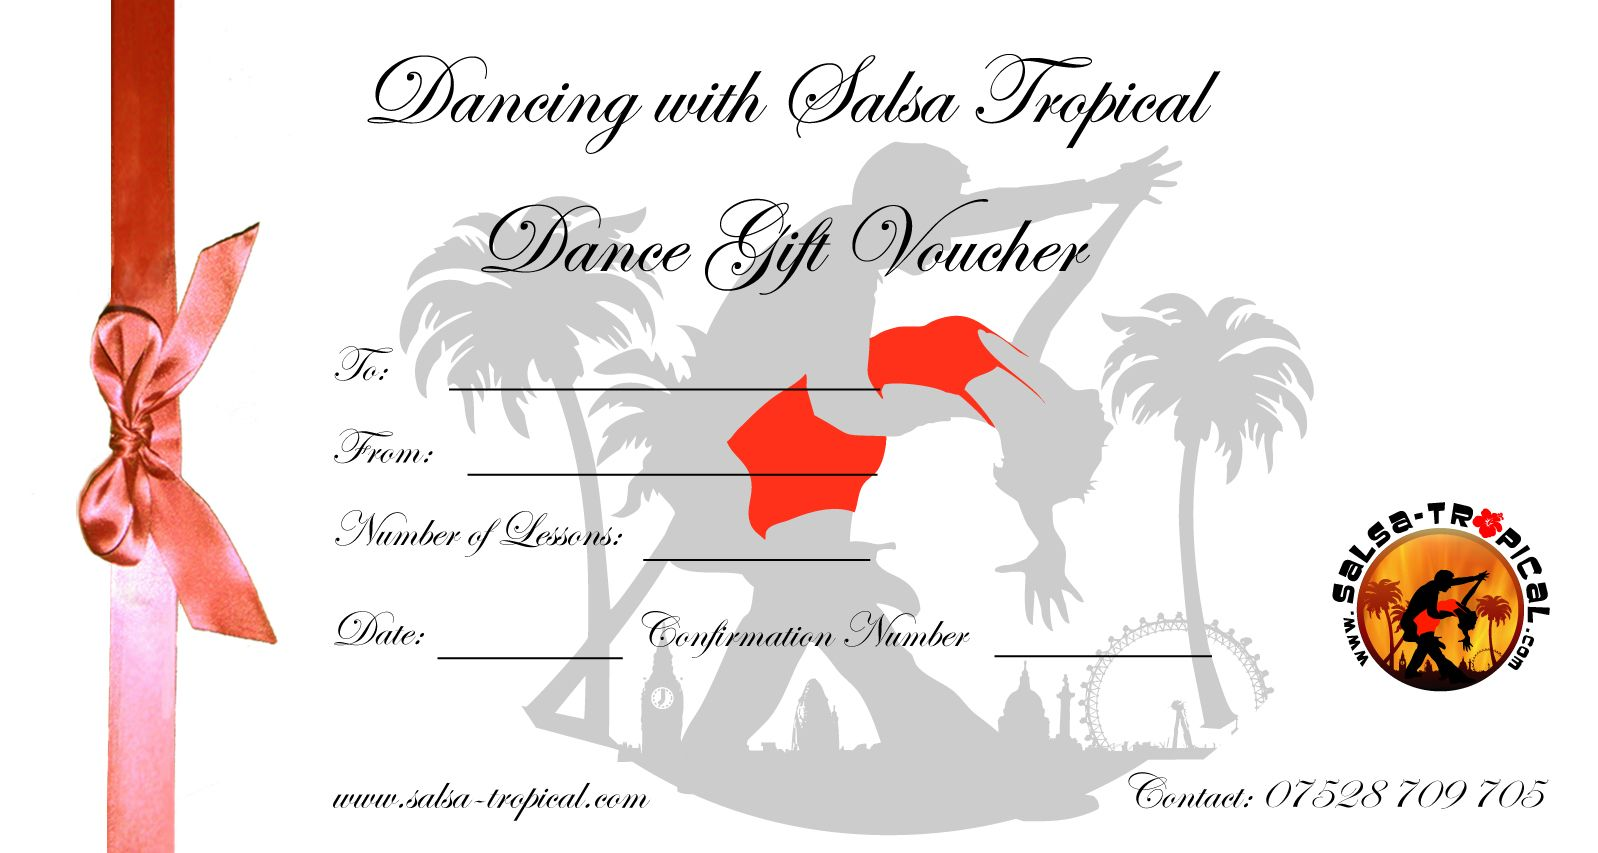 Dance gift certificate dance gifts gift certificates and dance gift certificate salsa tropical is a latin dance company offering numerous salsa dance services yadclub Gallery